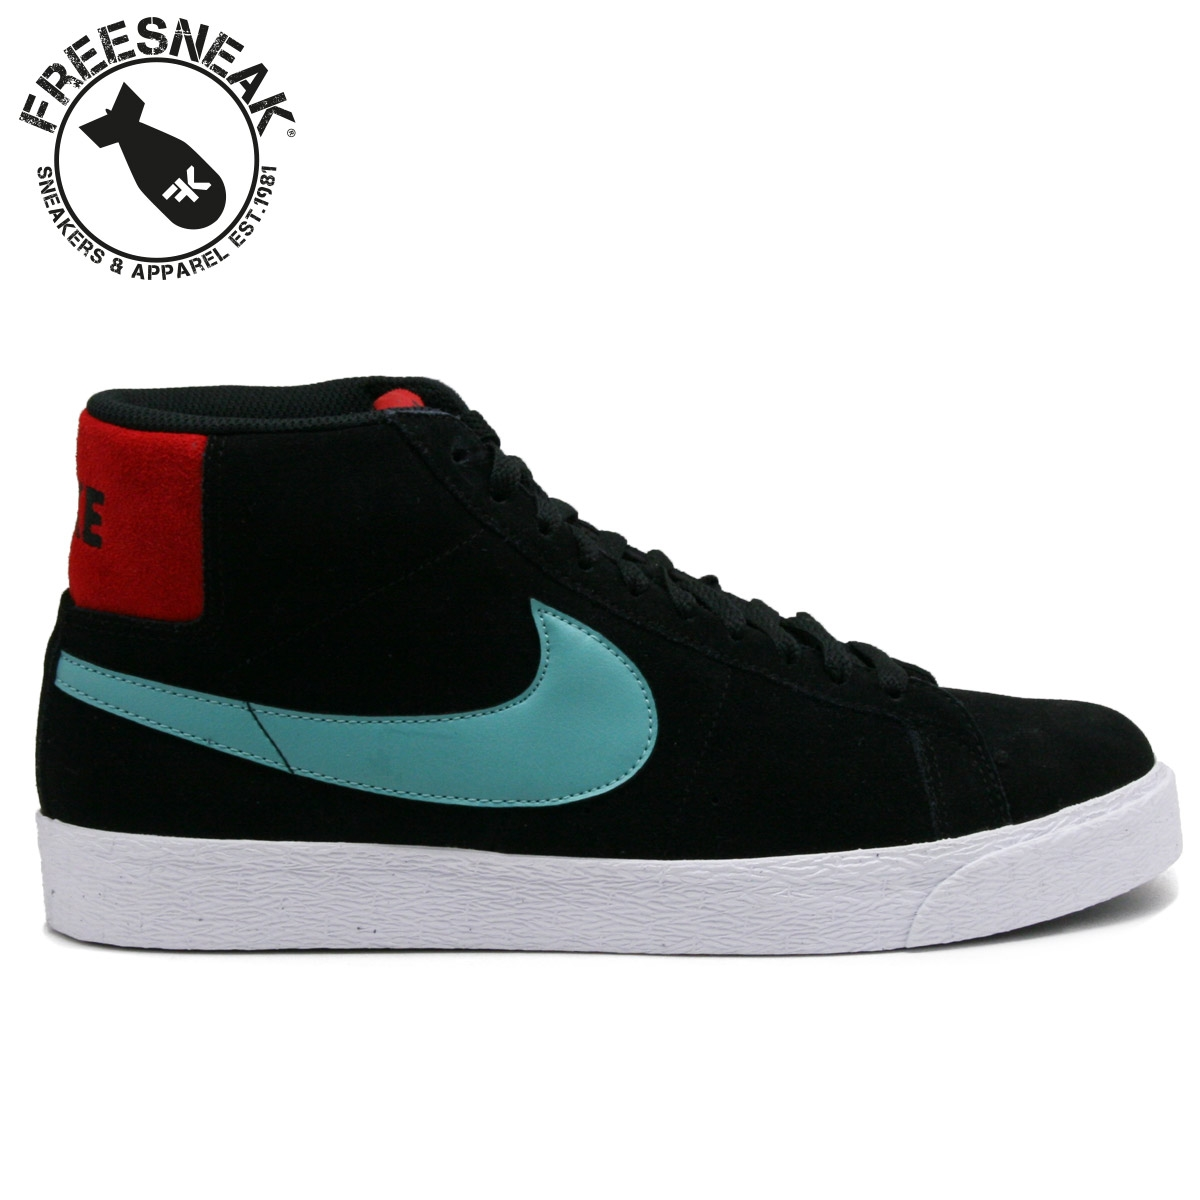 nike blazer basse blu elettrico air jordan pas cher chaussure. Black Bedroom Furniture Sets. Home Design Ideas